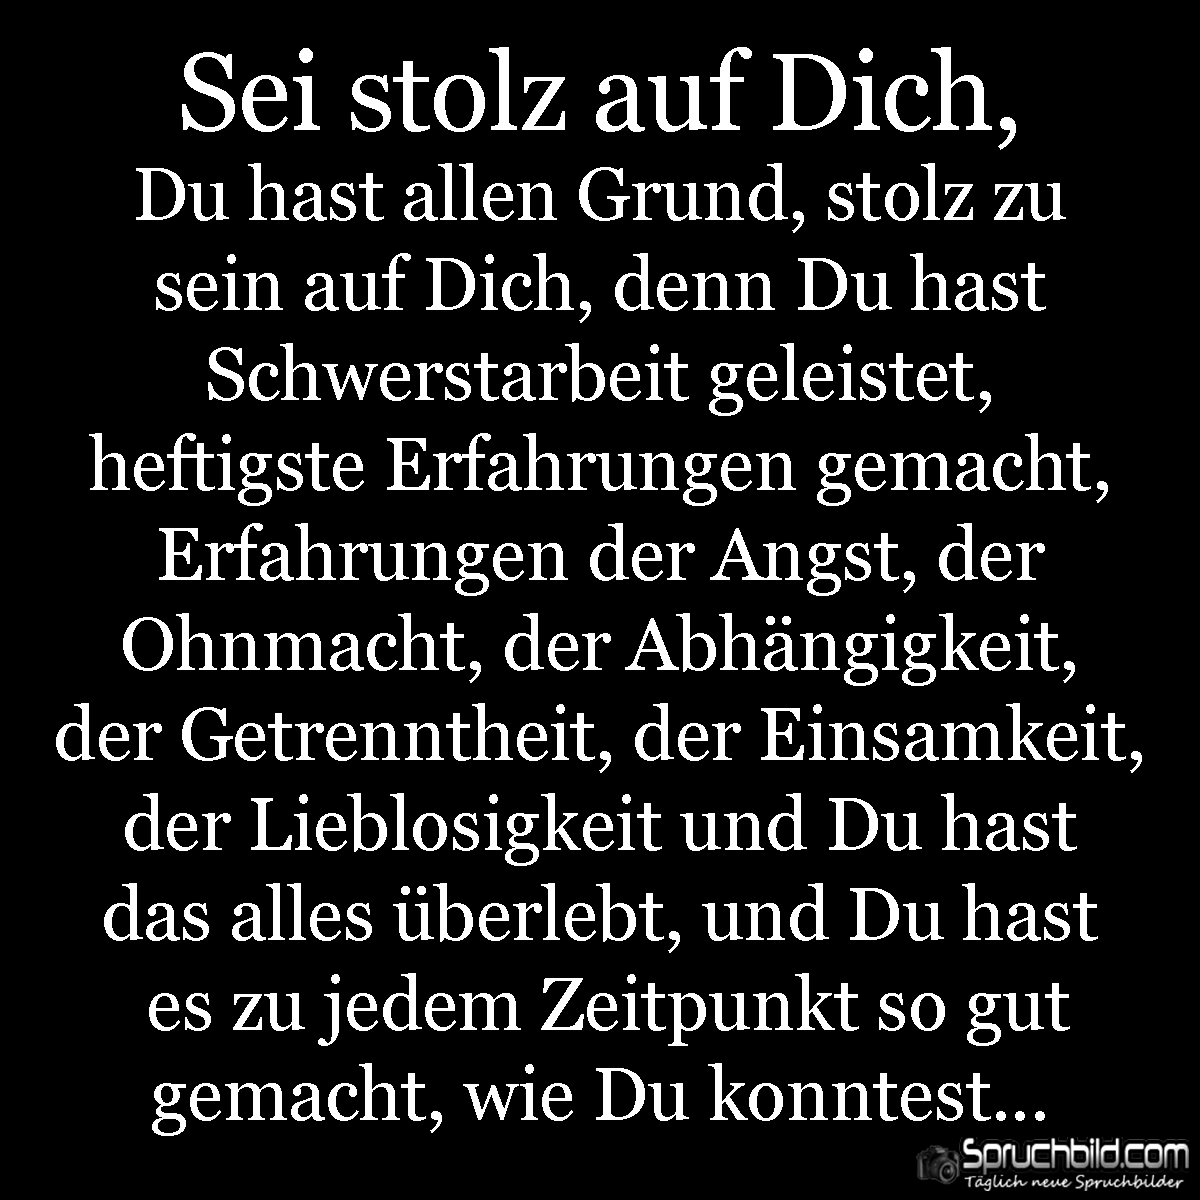 Sei stolz auf Dich | dyslexia and dyscalculia | Quotations ...